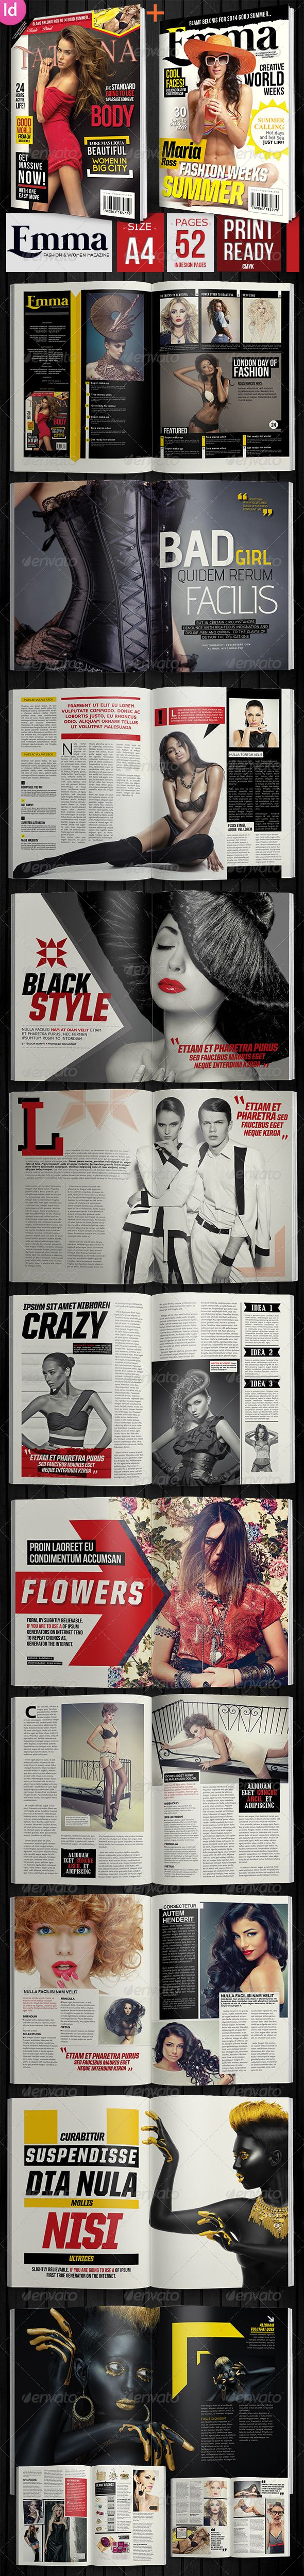 Emma Fashion Magazine + 2 Covers | Template, Print templates and Fonts